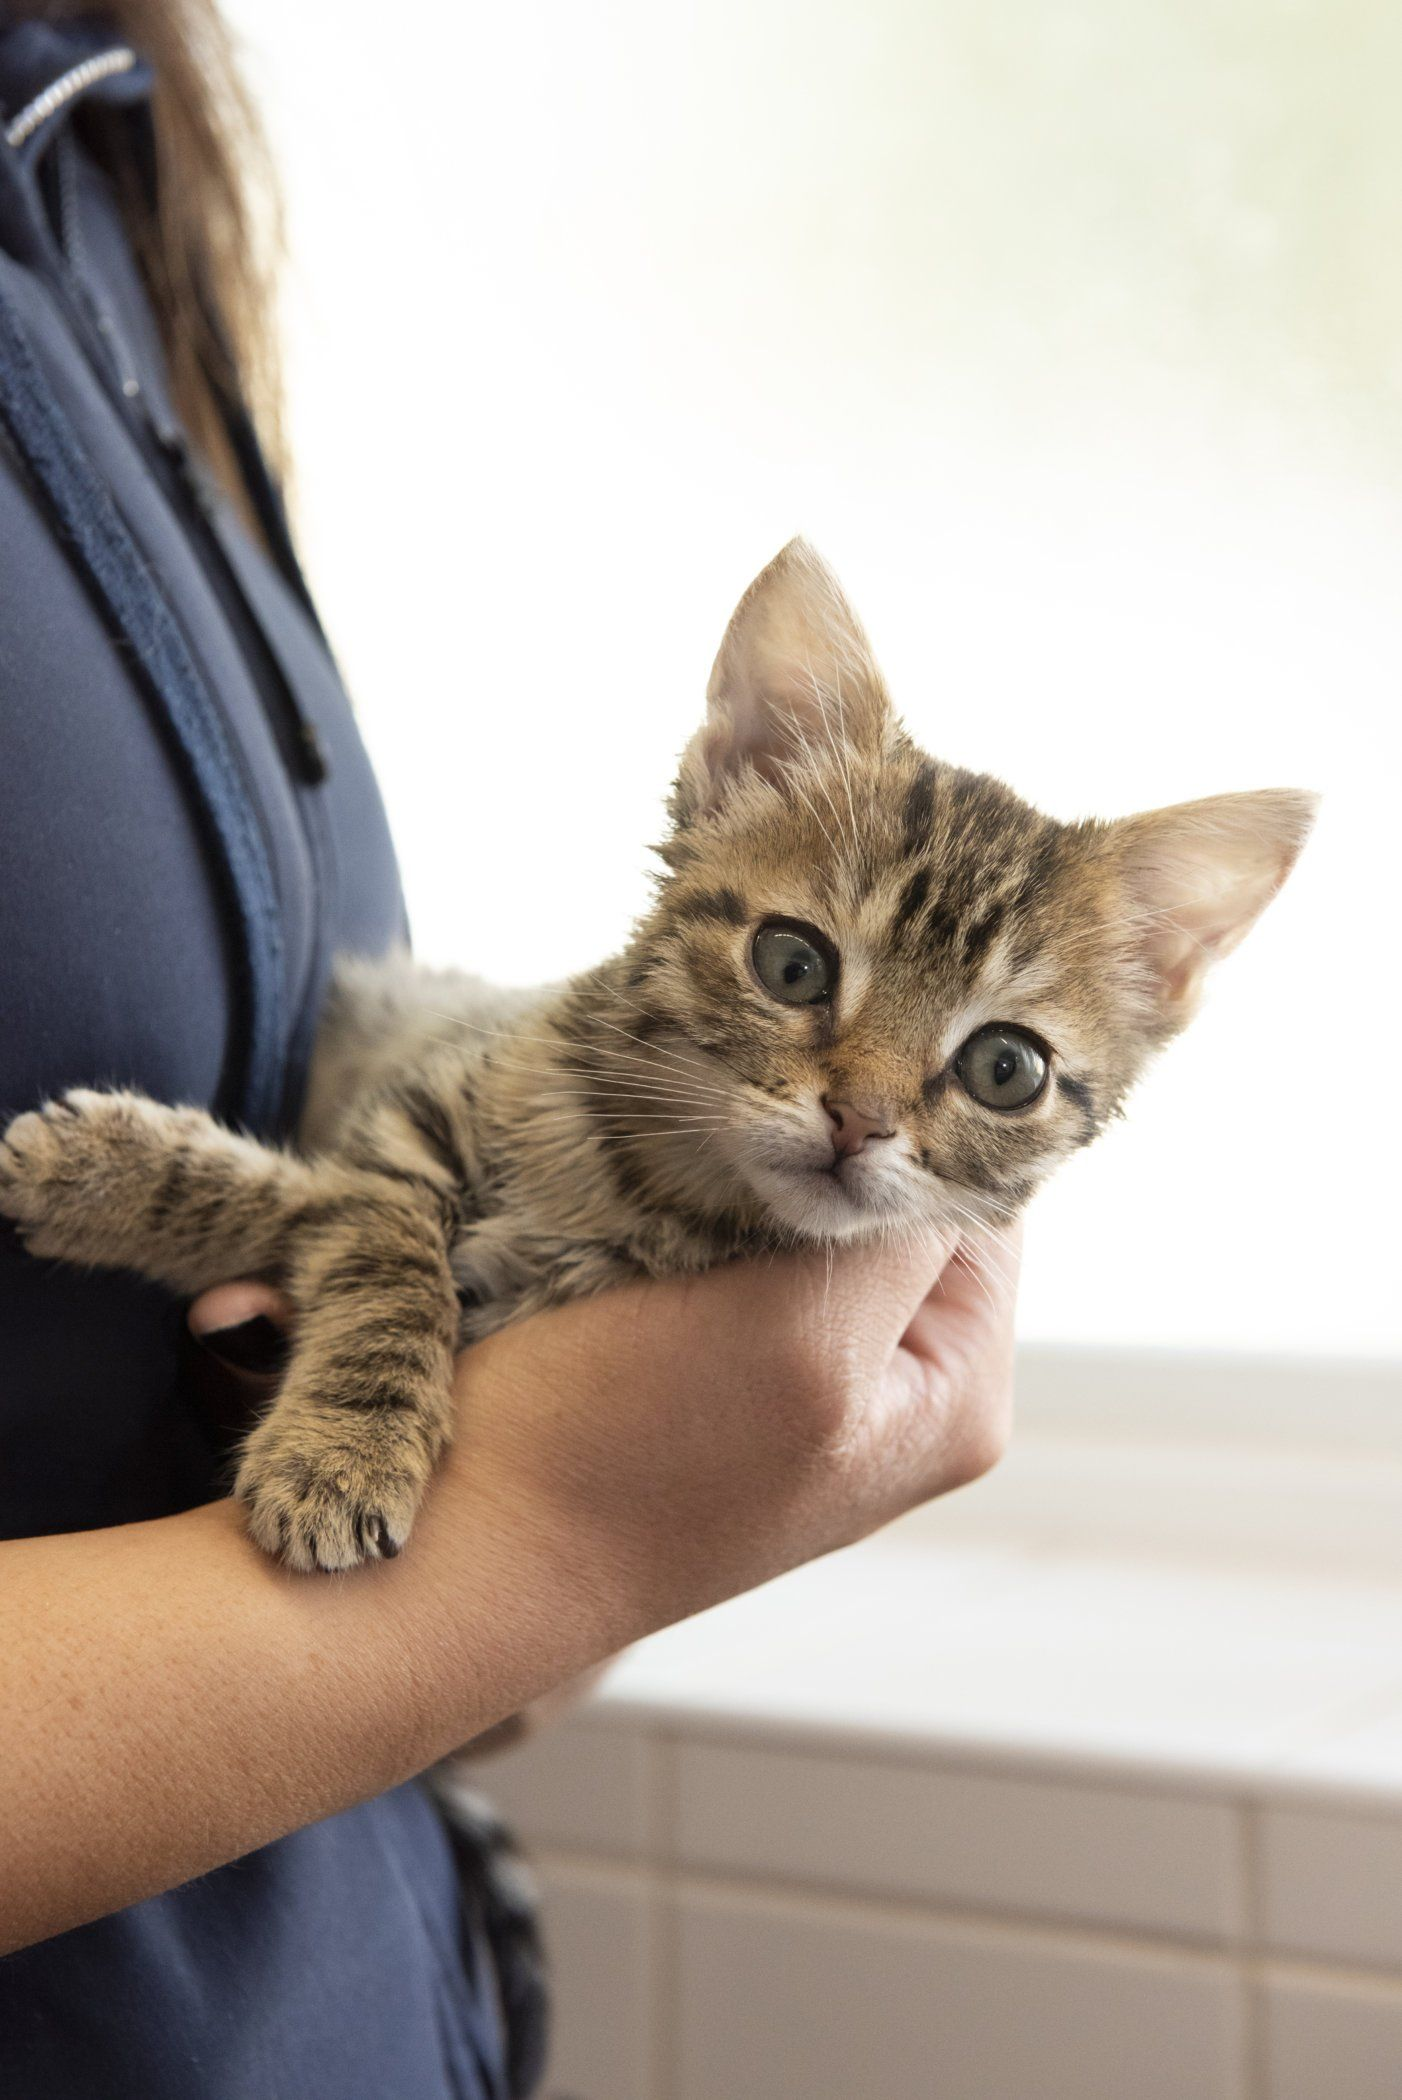 Rspca Tips For Buying A Happy And Healthy Kitten Katzenworld Cat Training Cats Dog Training Aggression